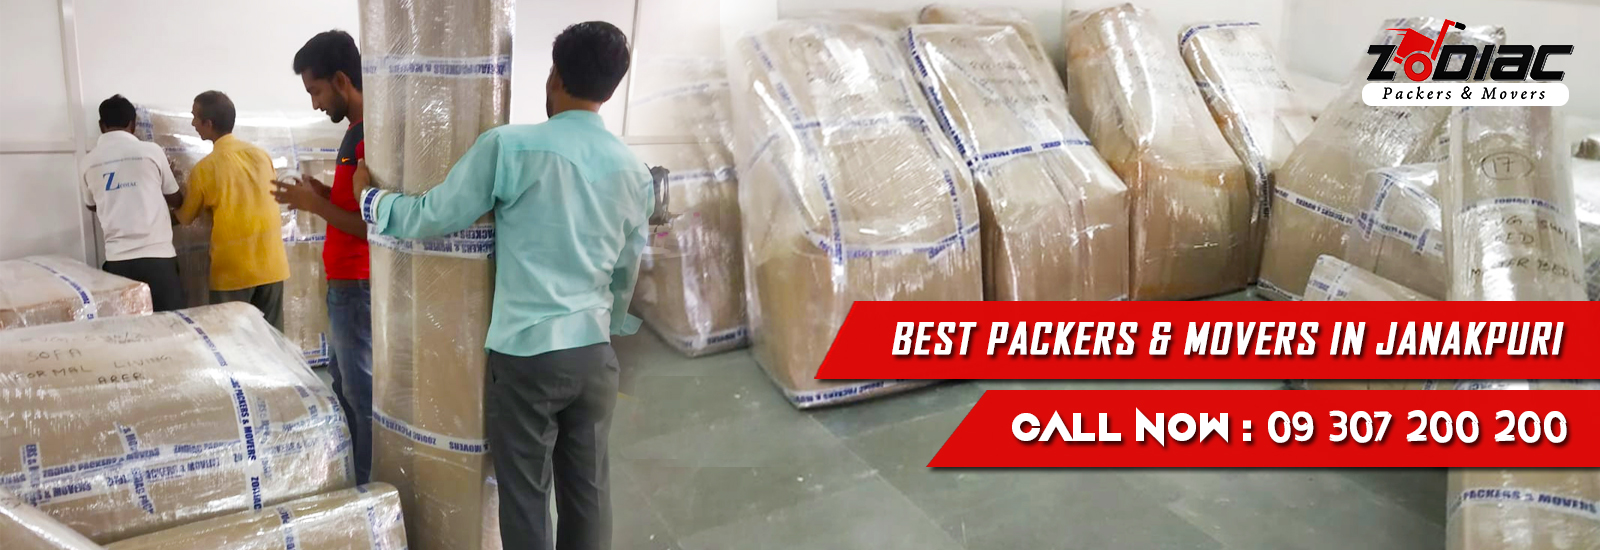 Packers and Movers in Janakpuri